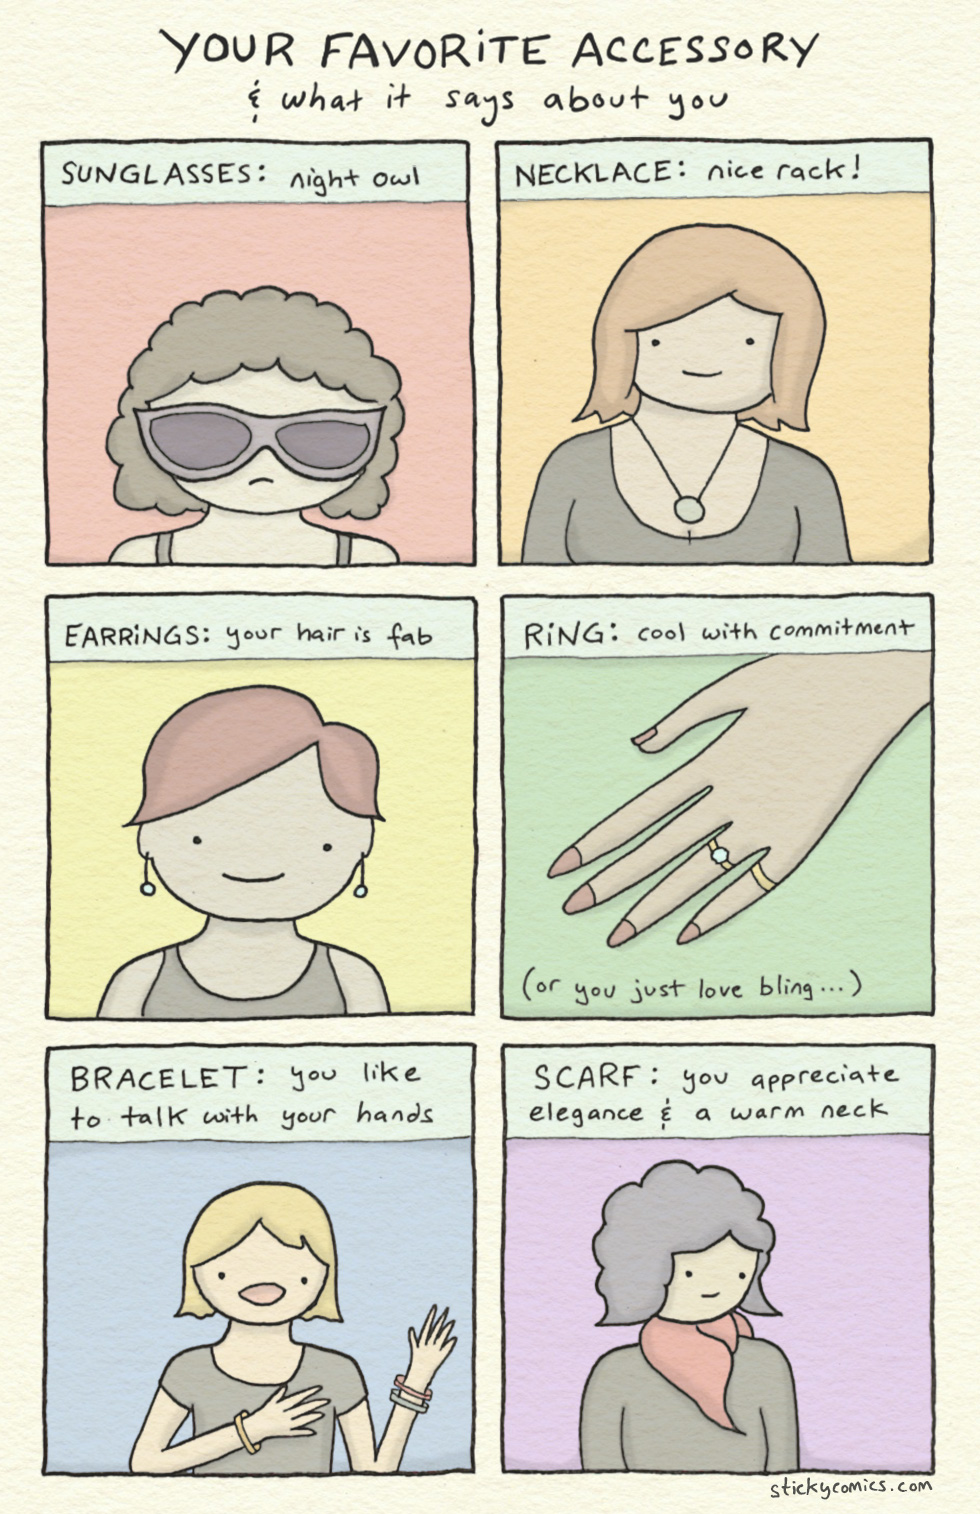 what does your favorite accessory say about you?